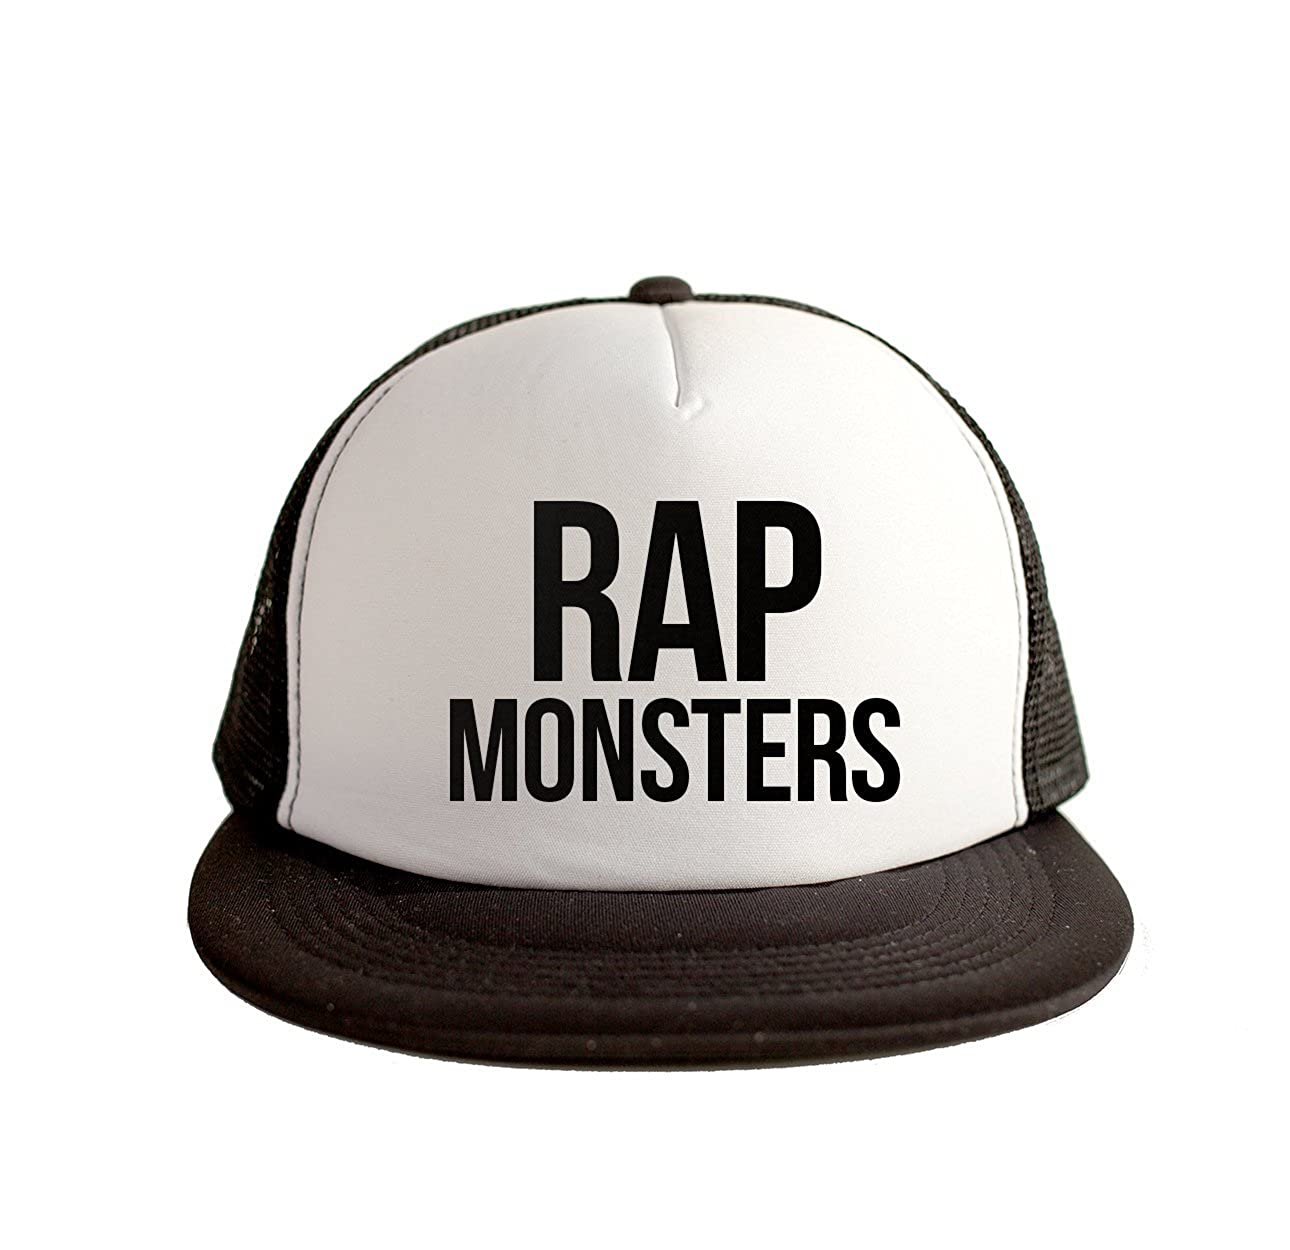 Rap Monsters Swag Hip Hop impresión 80s Style Snapback Sombrero ...